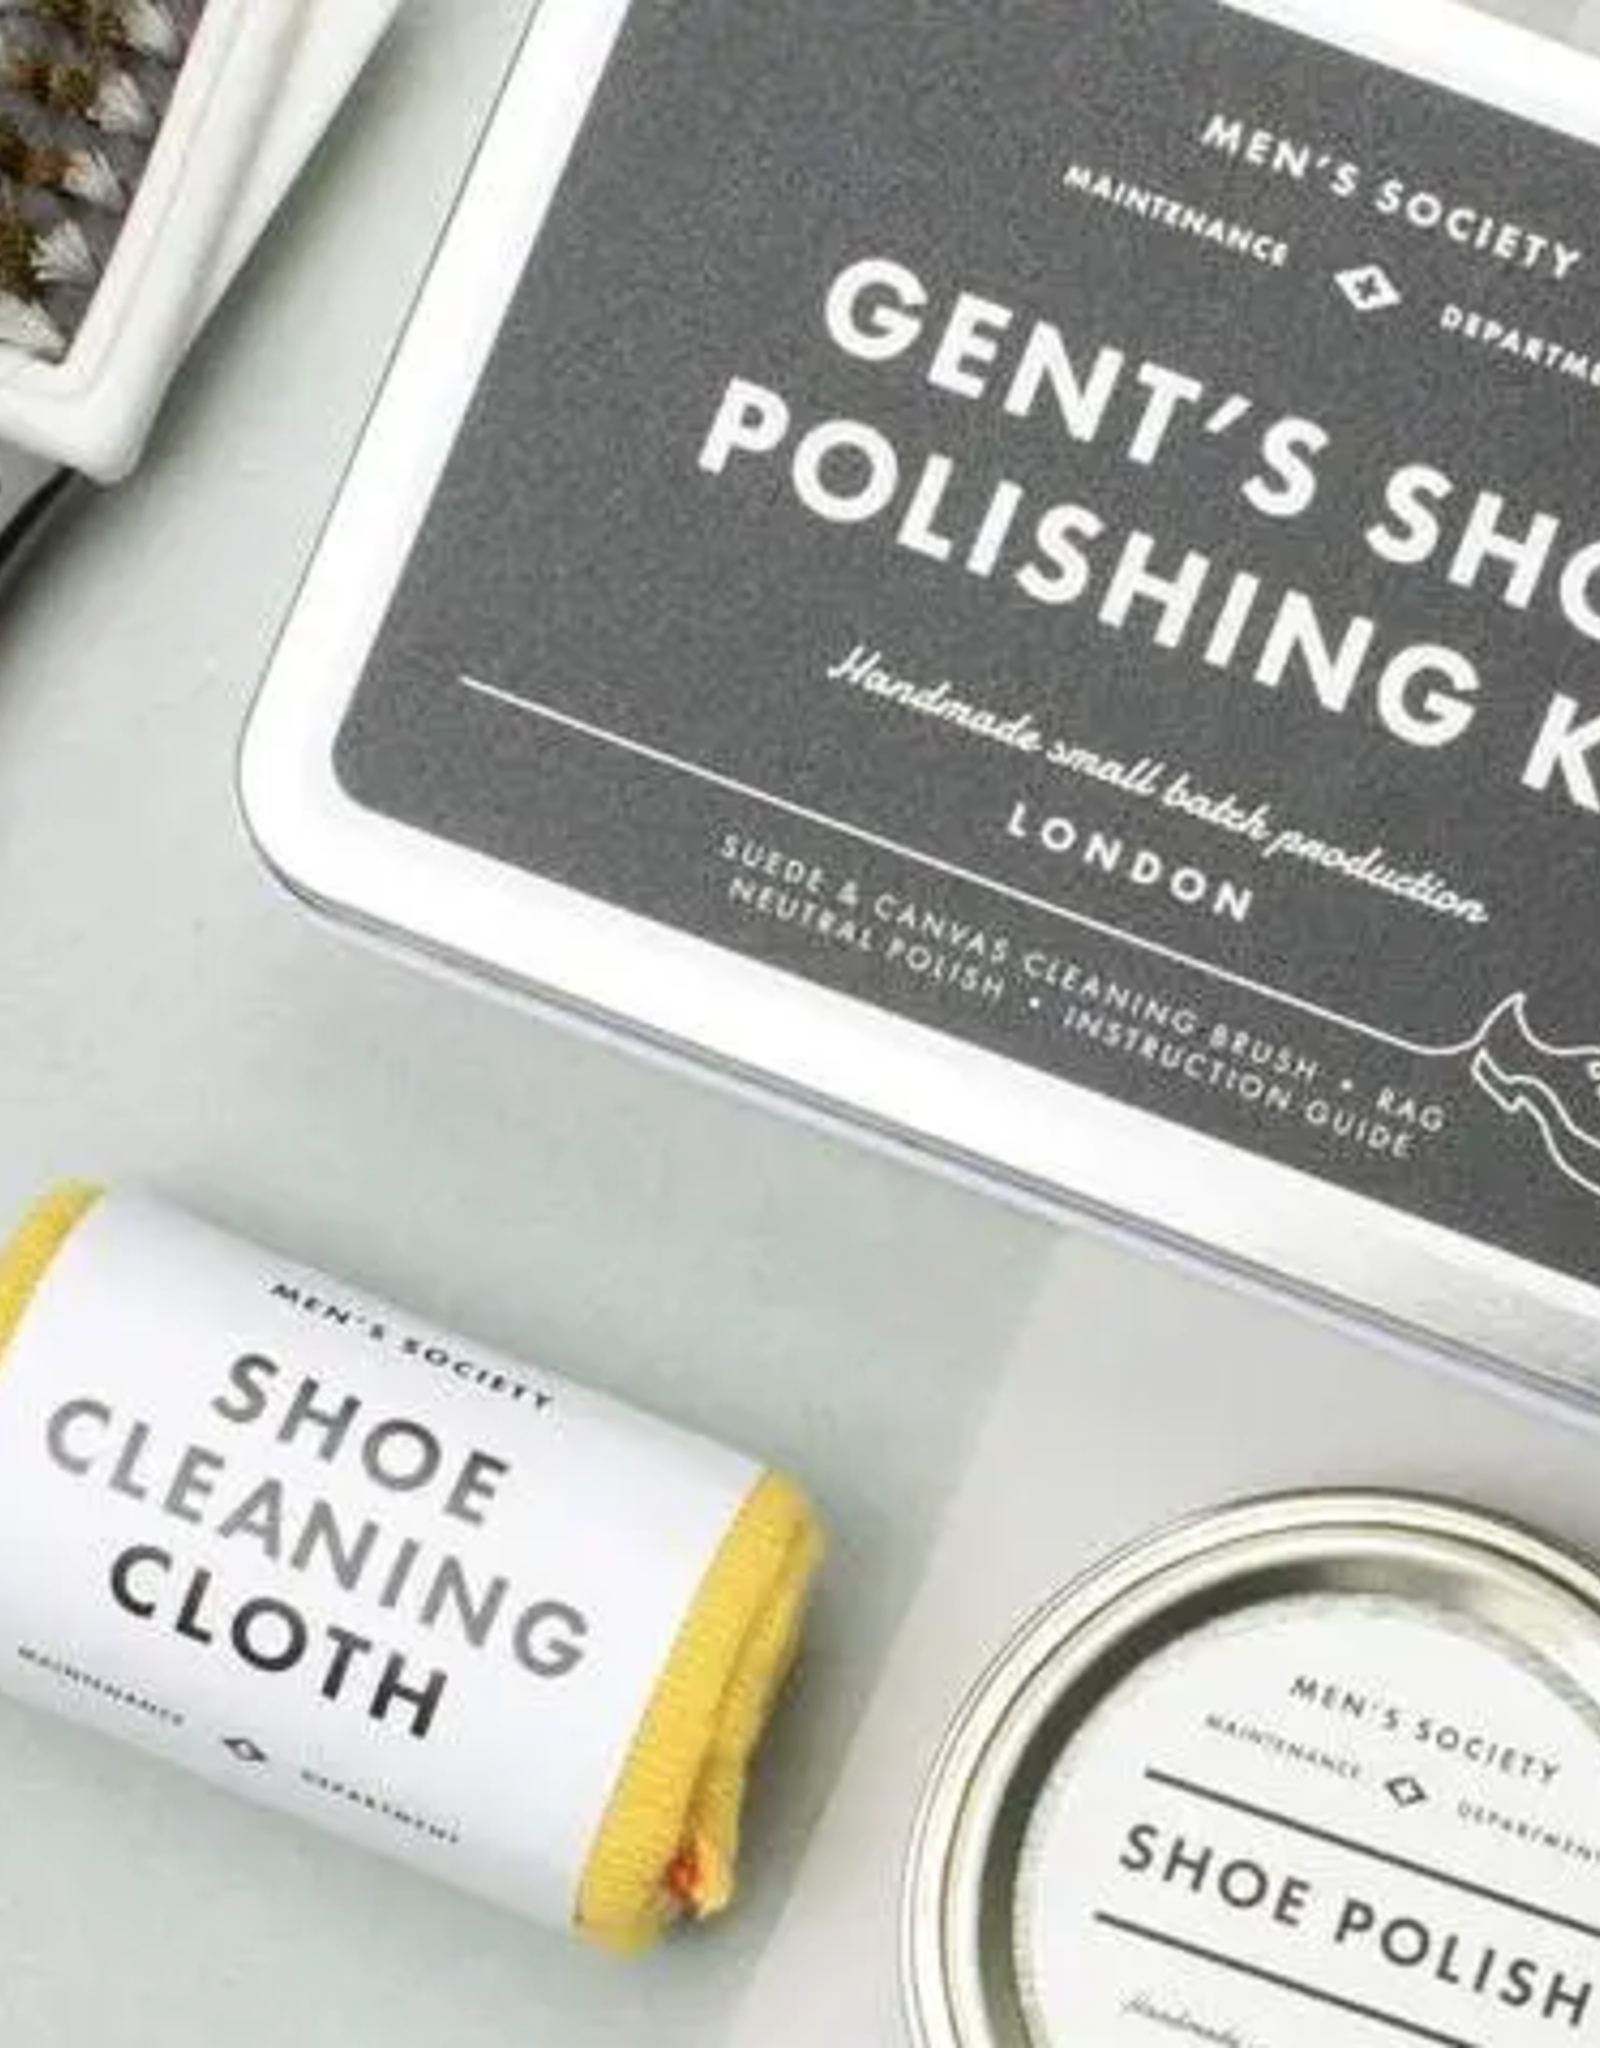 Gent's Shoe Polishing Kit